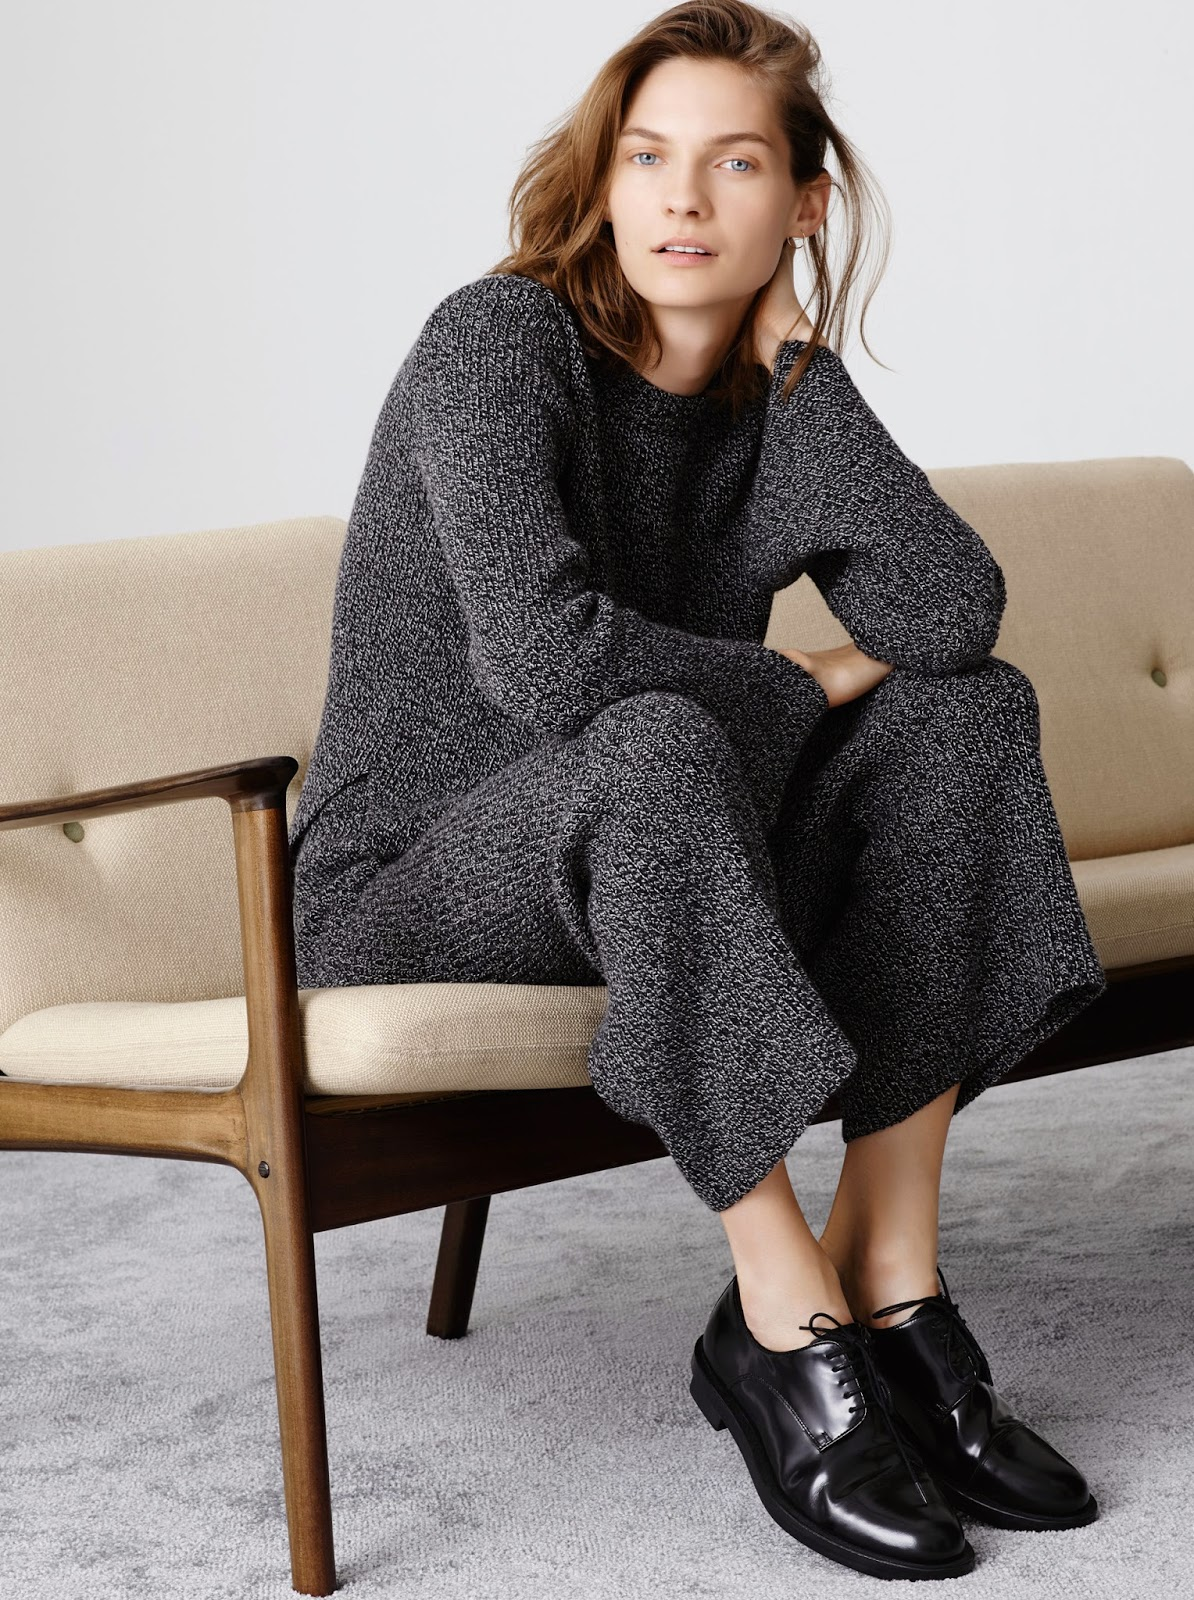 Zara November Lookbook Moda Fashion Trends Tendencias Otoño 2014